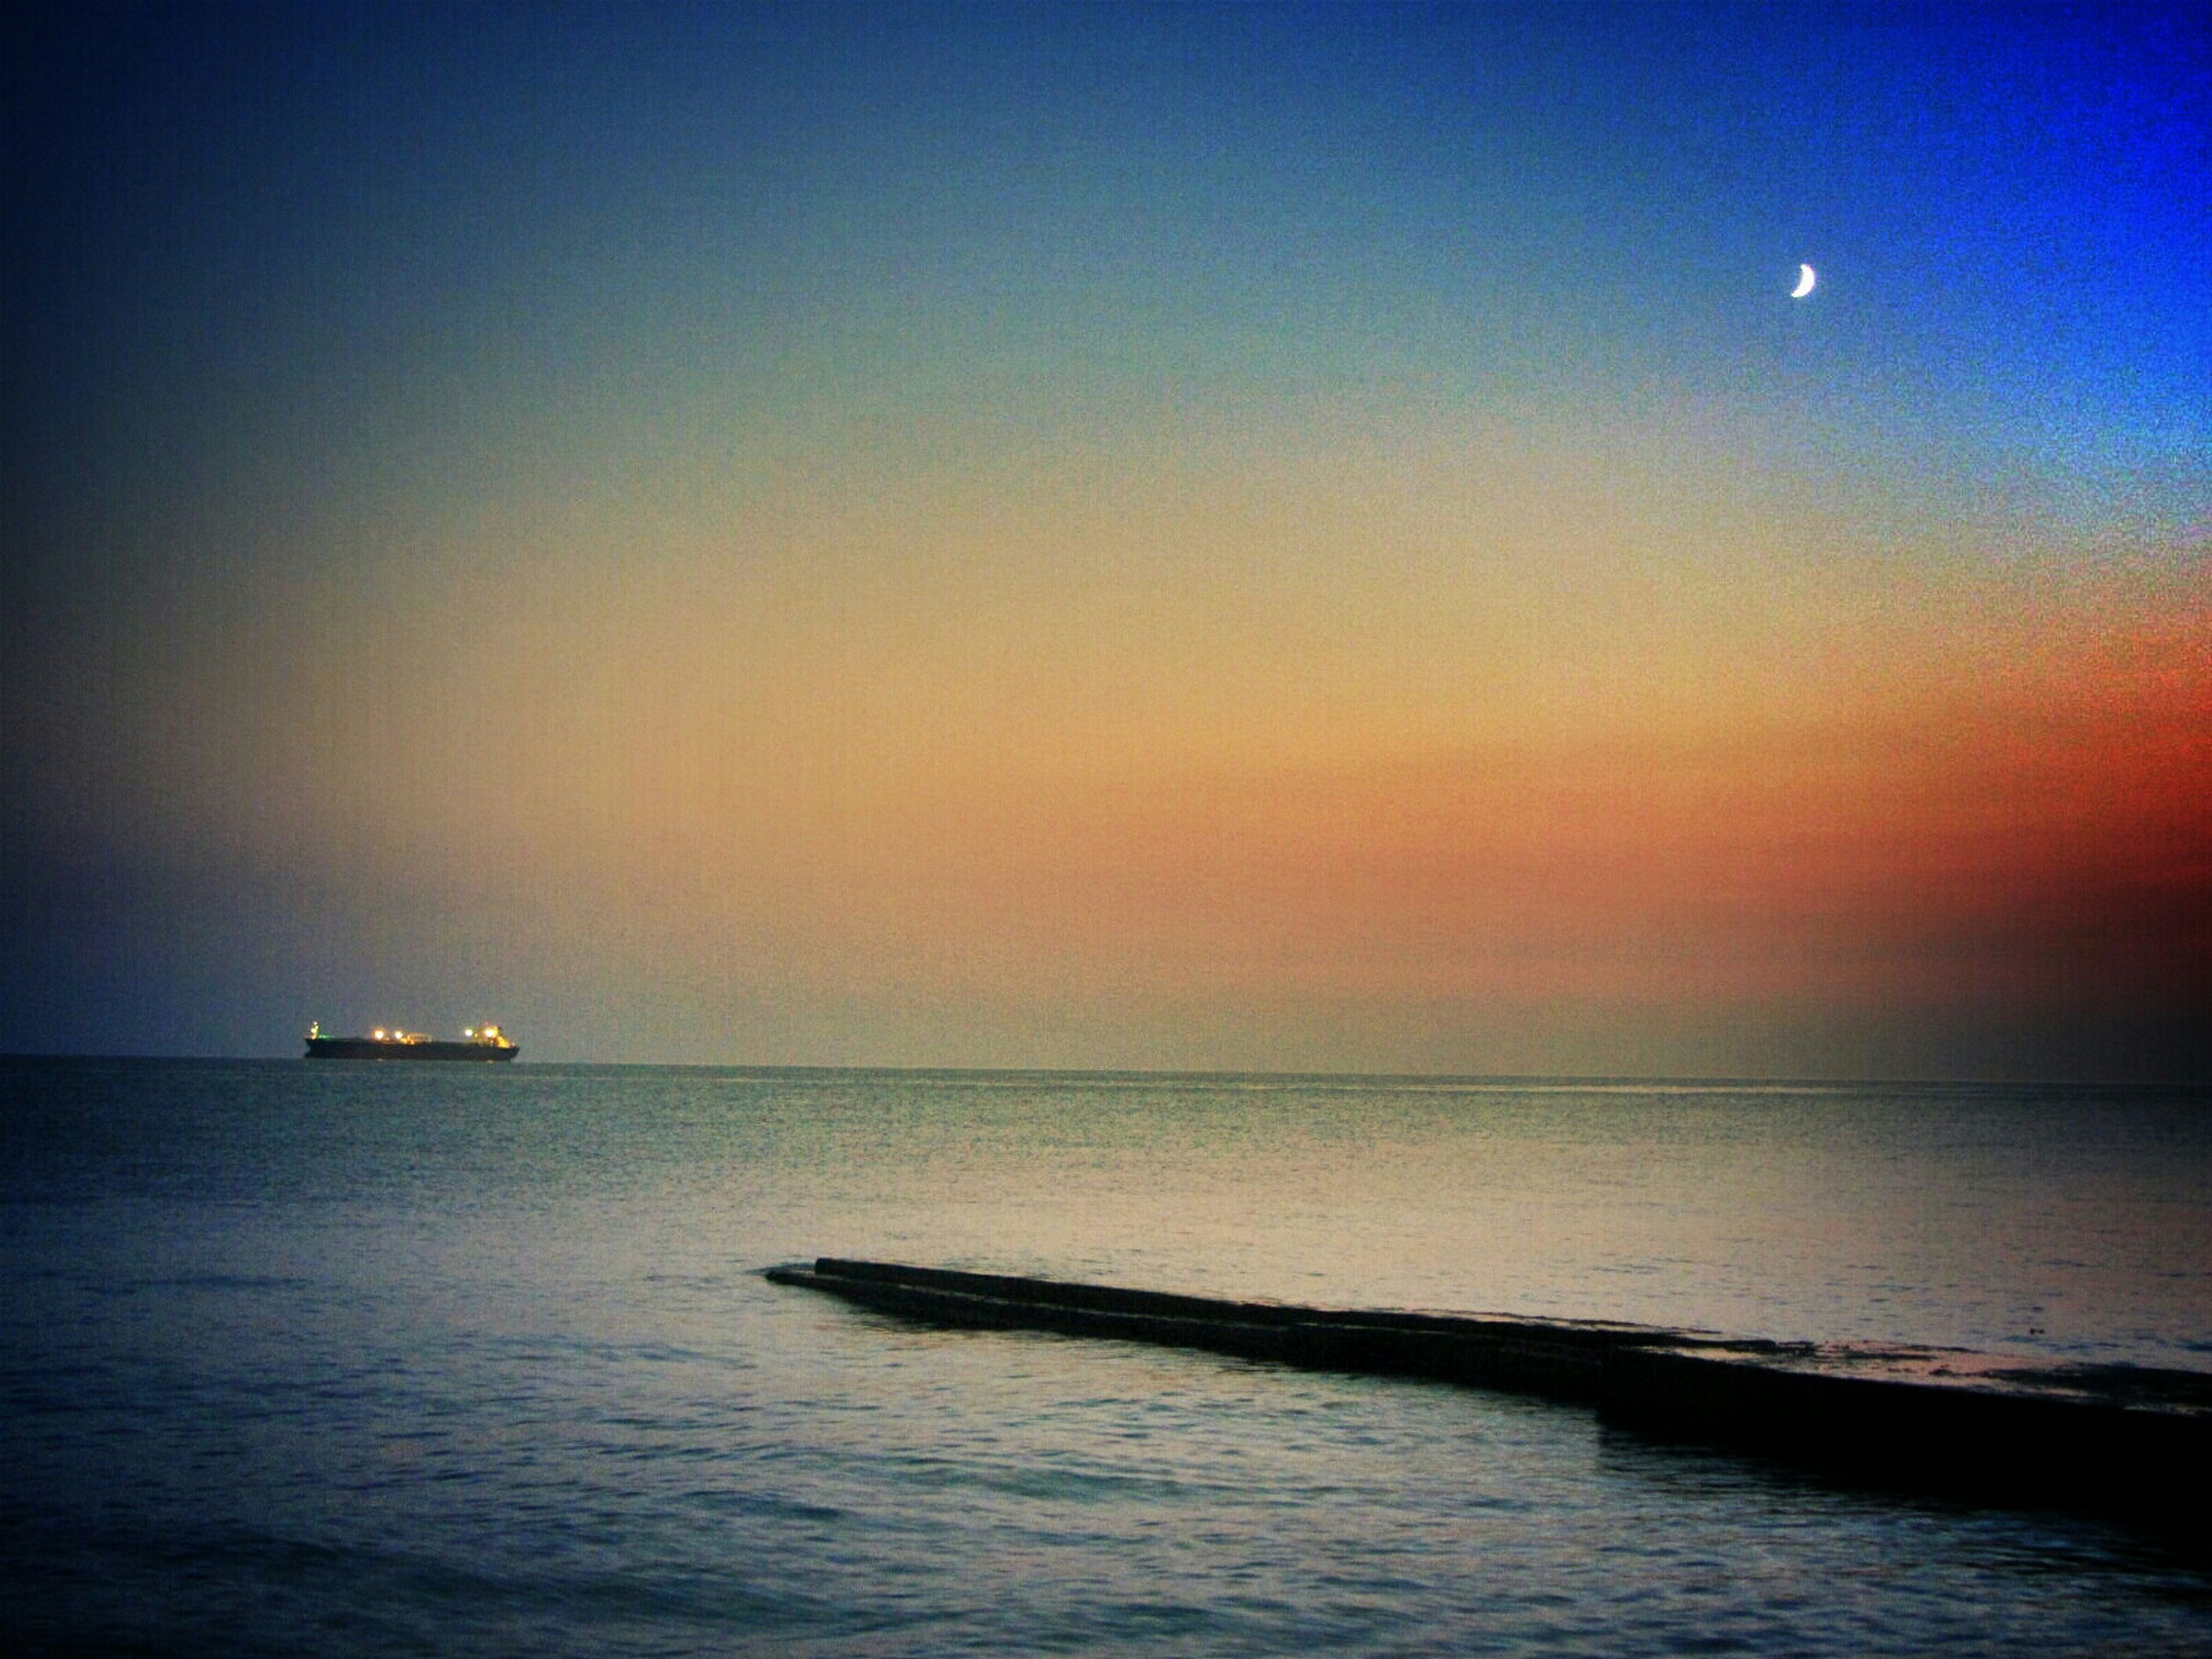 sea, water, horizon over water, sunset, tranquil scene, scenics, tranquility, beauty in nature, waterfront, nautical vessel, nature, idyllic, copy space, sky, transportation, boat, orange color, seascape, clear sky, silhouette